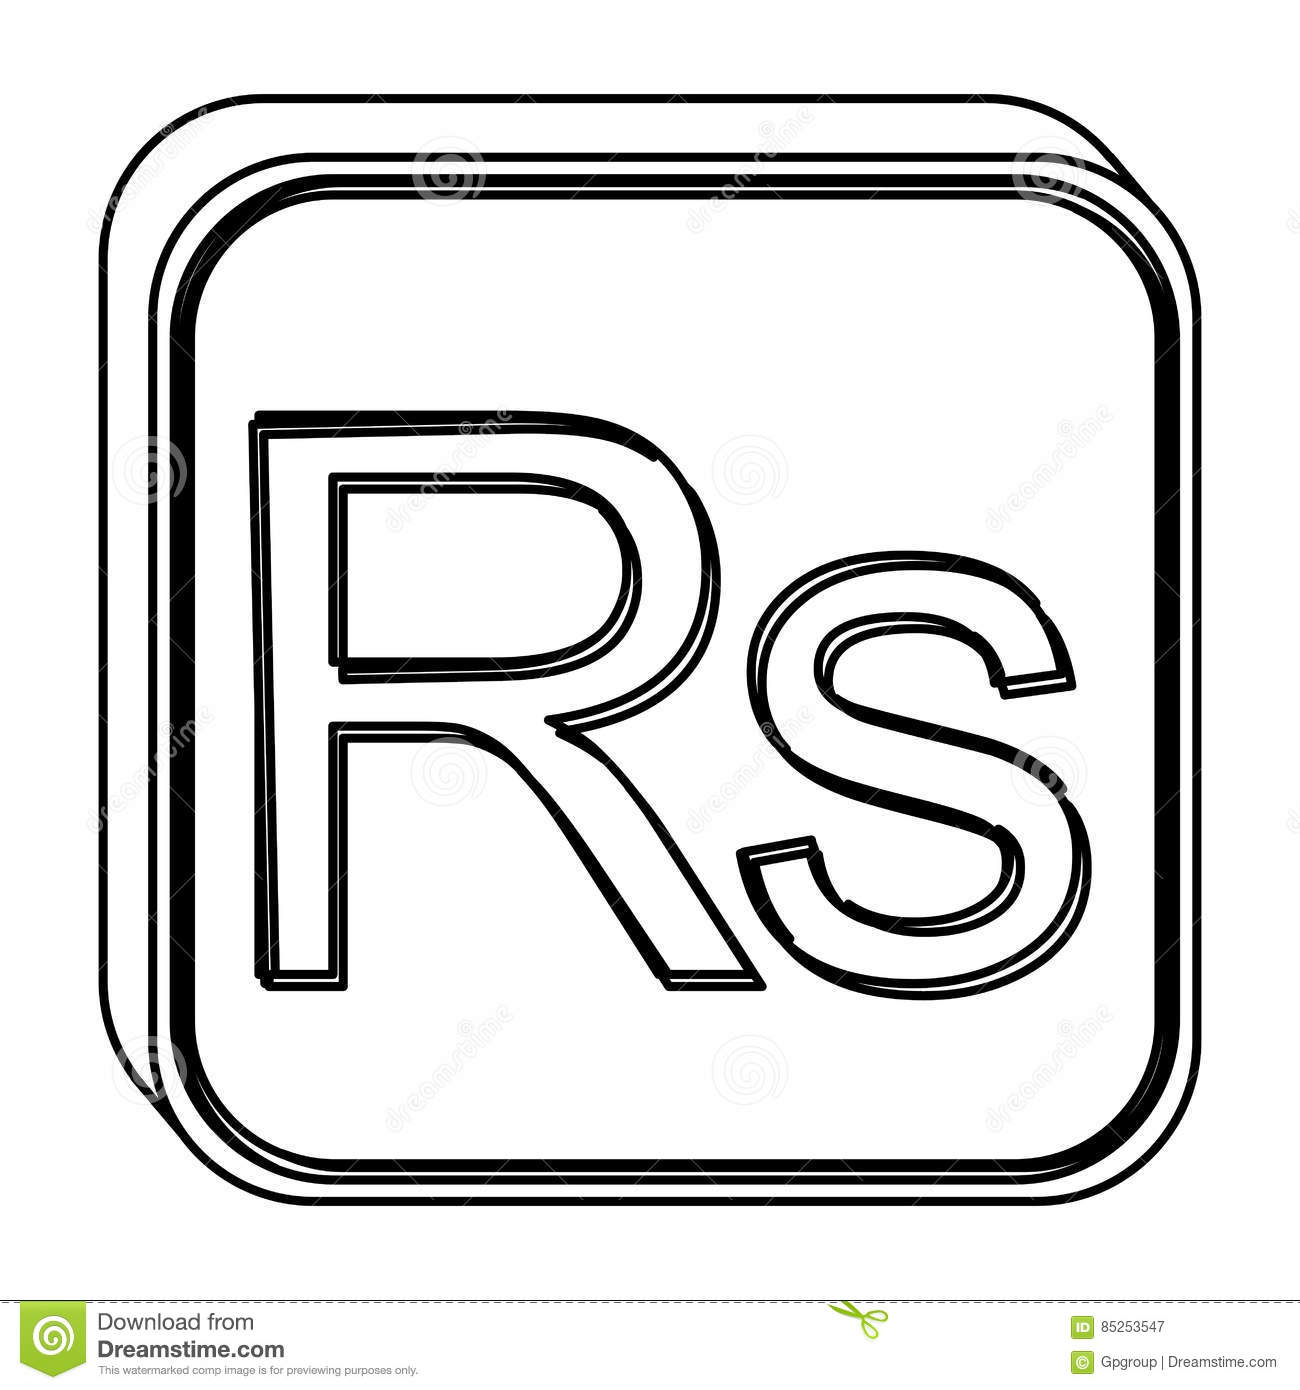 Monochrome Square Contour With Currency Symbol Of India Rupee Stock